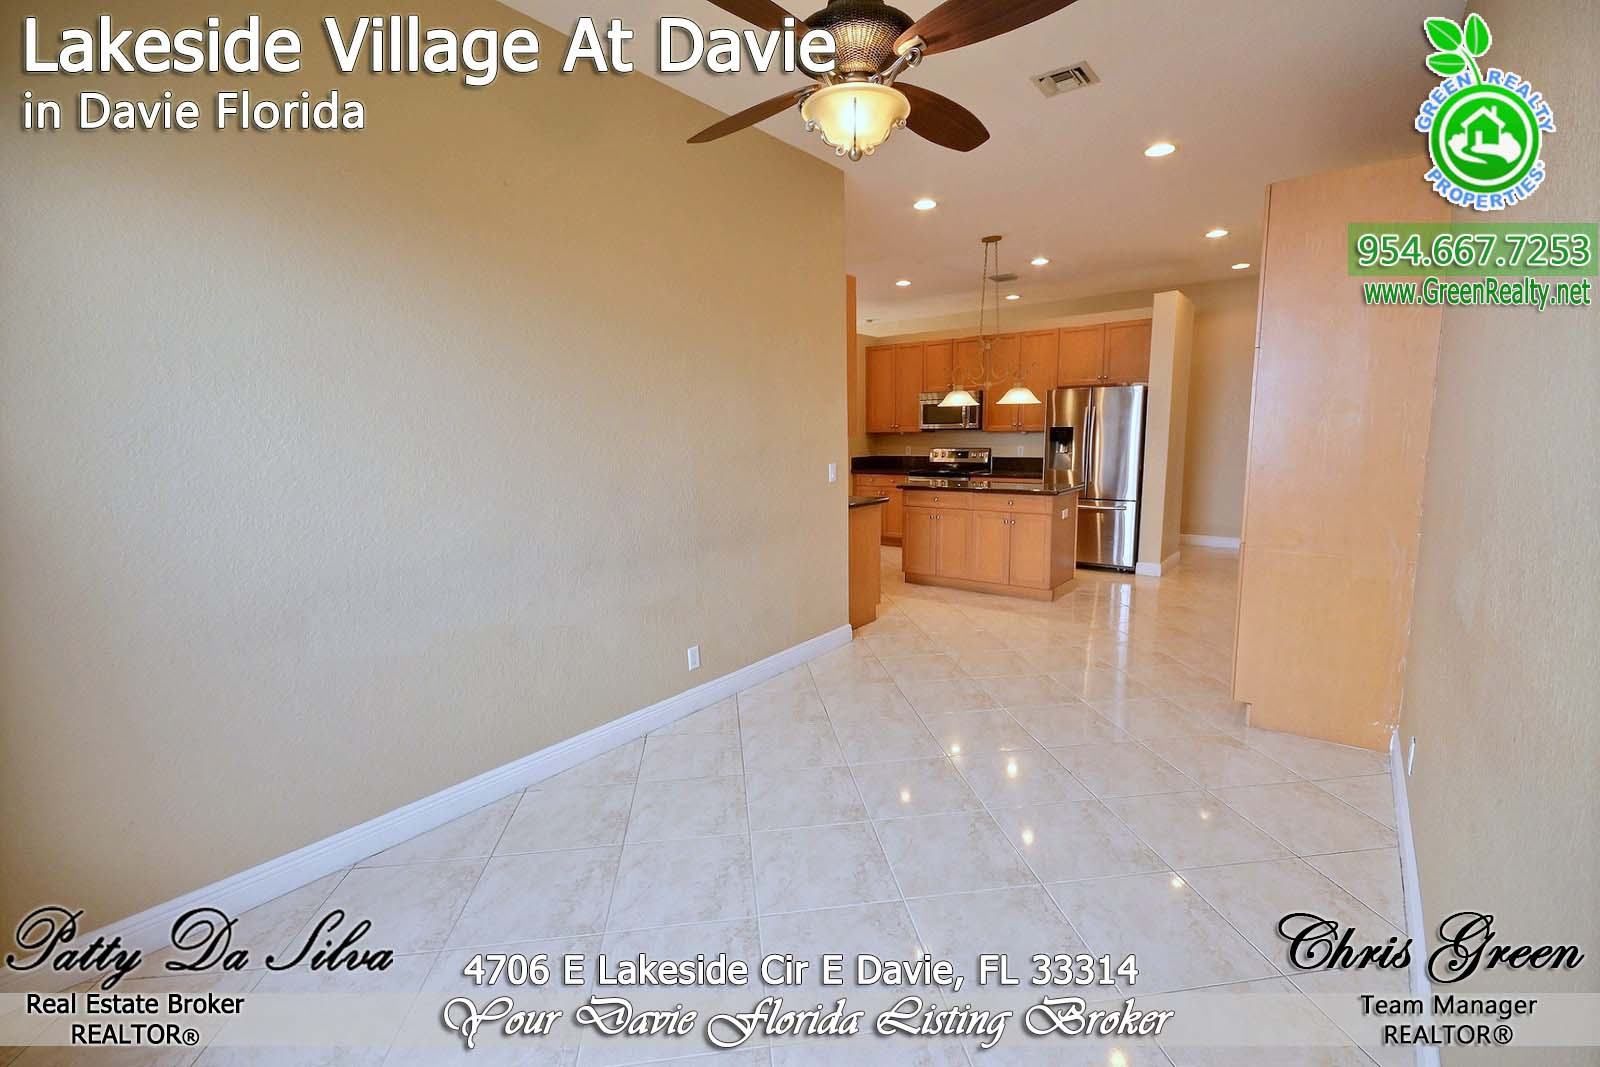 15 Davie Real Estate For Sale (2)